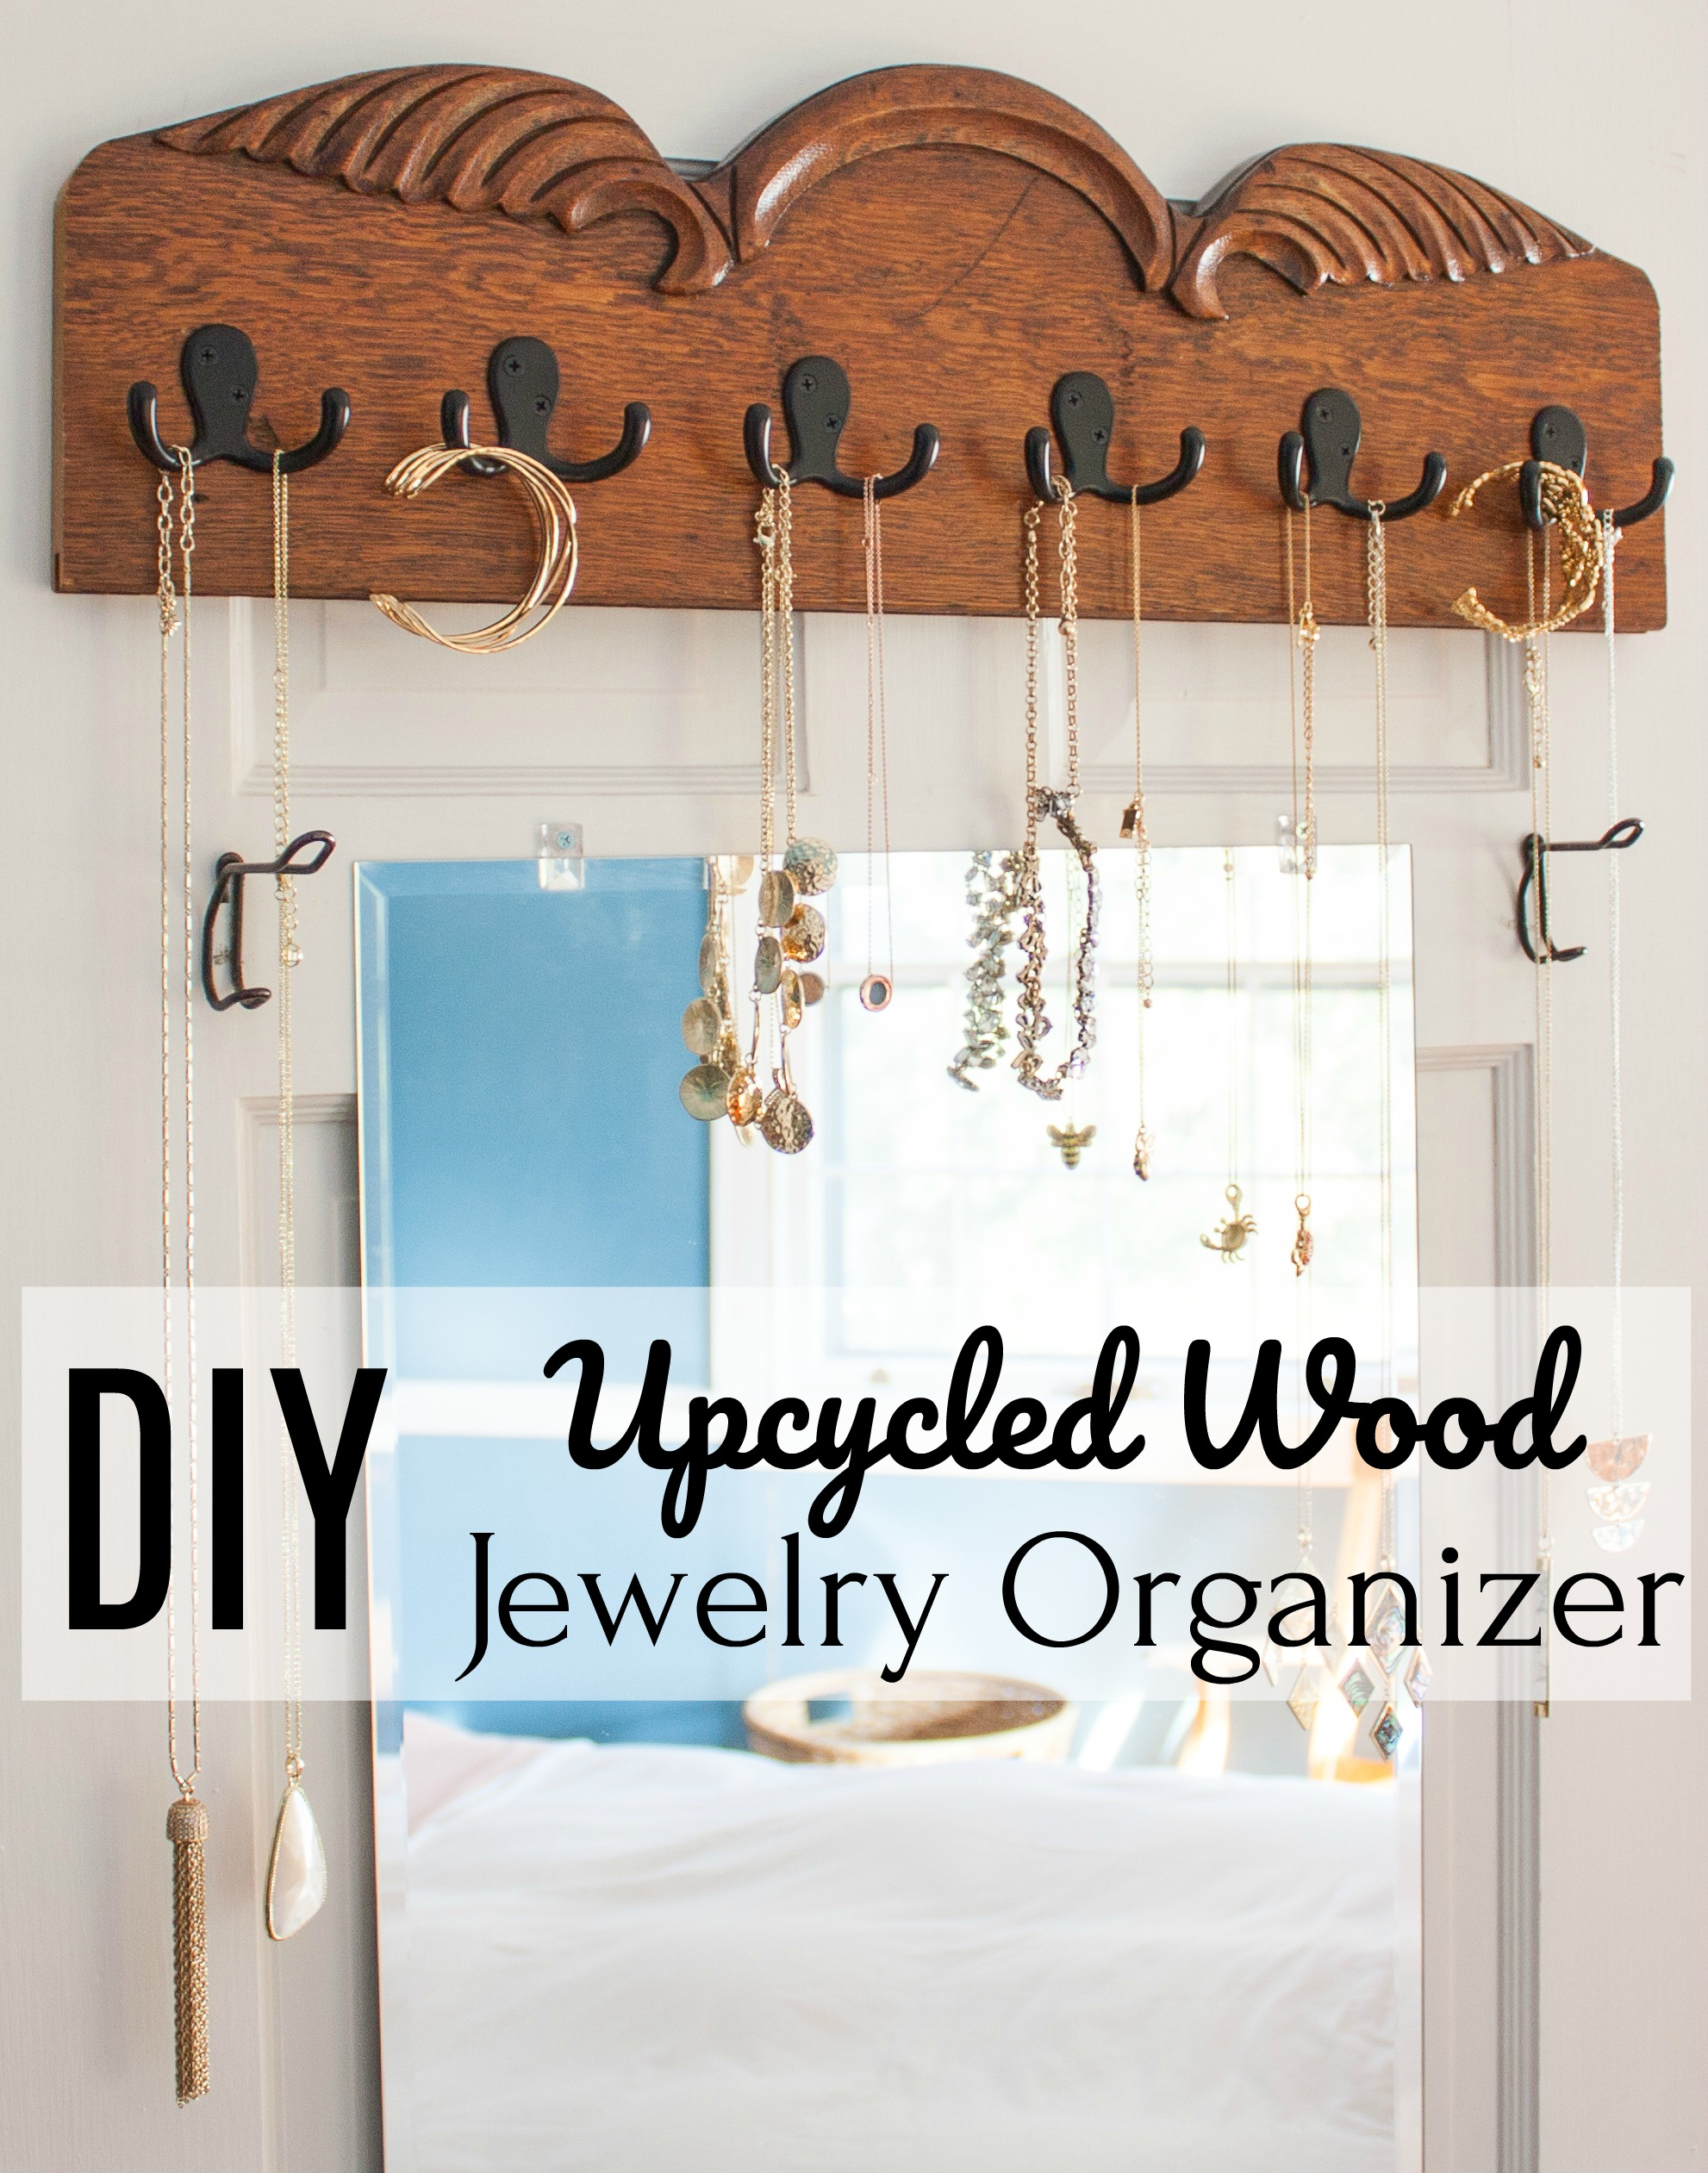 DIY Upcycled Wood Jewelry Organizer - Make a jewelry organizer using upcycled wood. #jewelryorganizer #diyjewelryorganizer #diyprojects